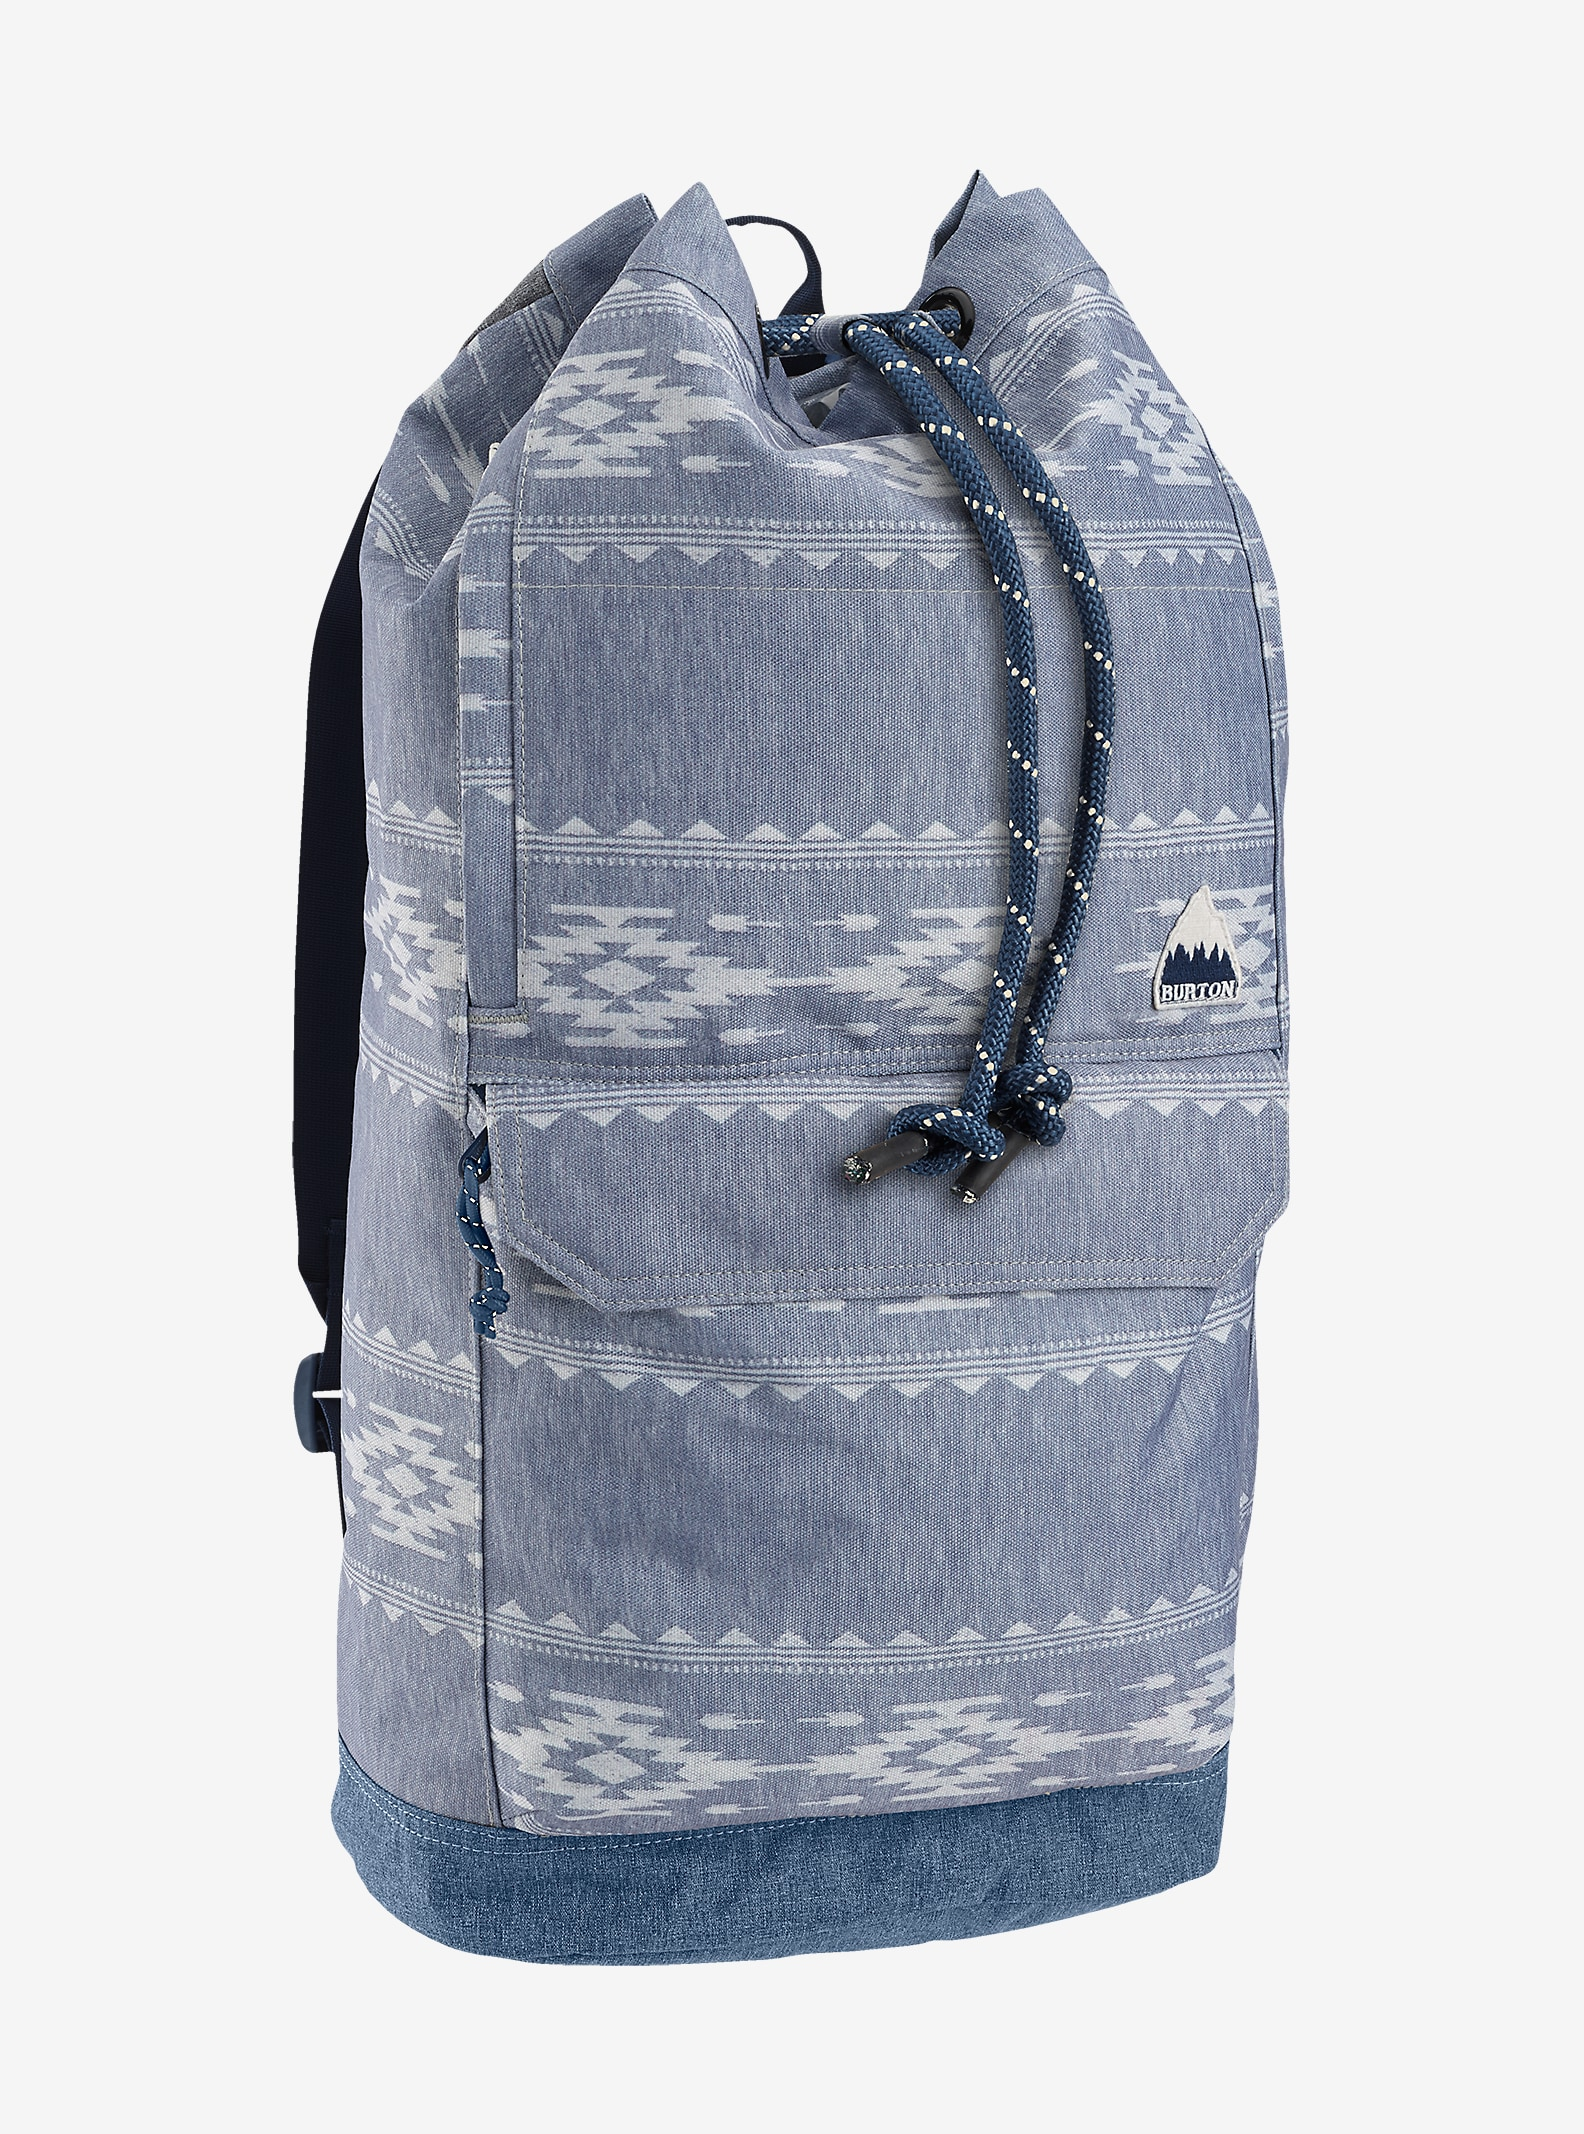 Burton Frontier Backpack shown in Famish Stripe [bluesign® Approved Fabric]